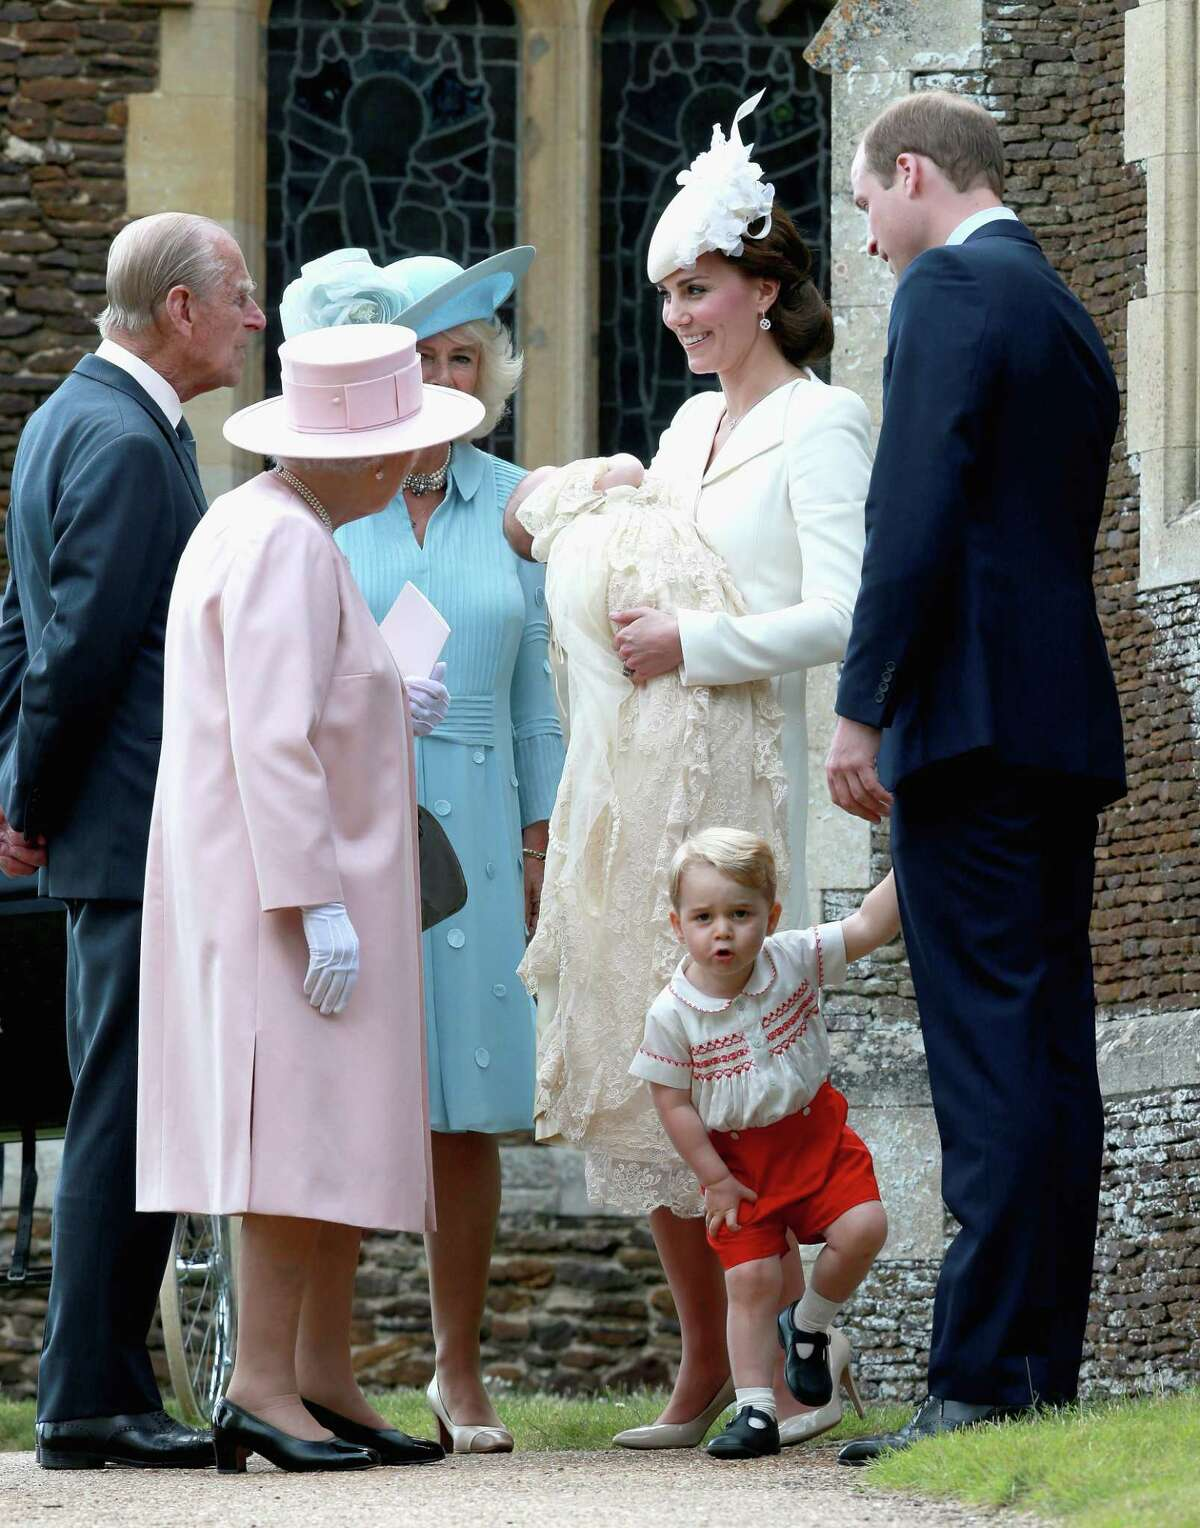 Kate, the Duchess of Cambridge, centre right, holding their daughter Princess Charlotte of Cambridge stands next to Britain's Prince William, Duke of Cambridge, holding their son Prince George of Cambridge's hand, as they talk to Britain's Queen Elizabeth II, left, and Prince Phillip and Camilla, Duchess of Cornwall, after the Christening of Princess Charlotte of Cambridge at St. Mary Magdalene Church in Sandringham, England on Sunday, July 5, 2015.